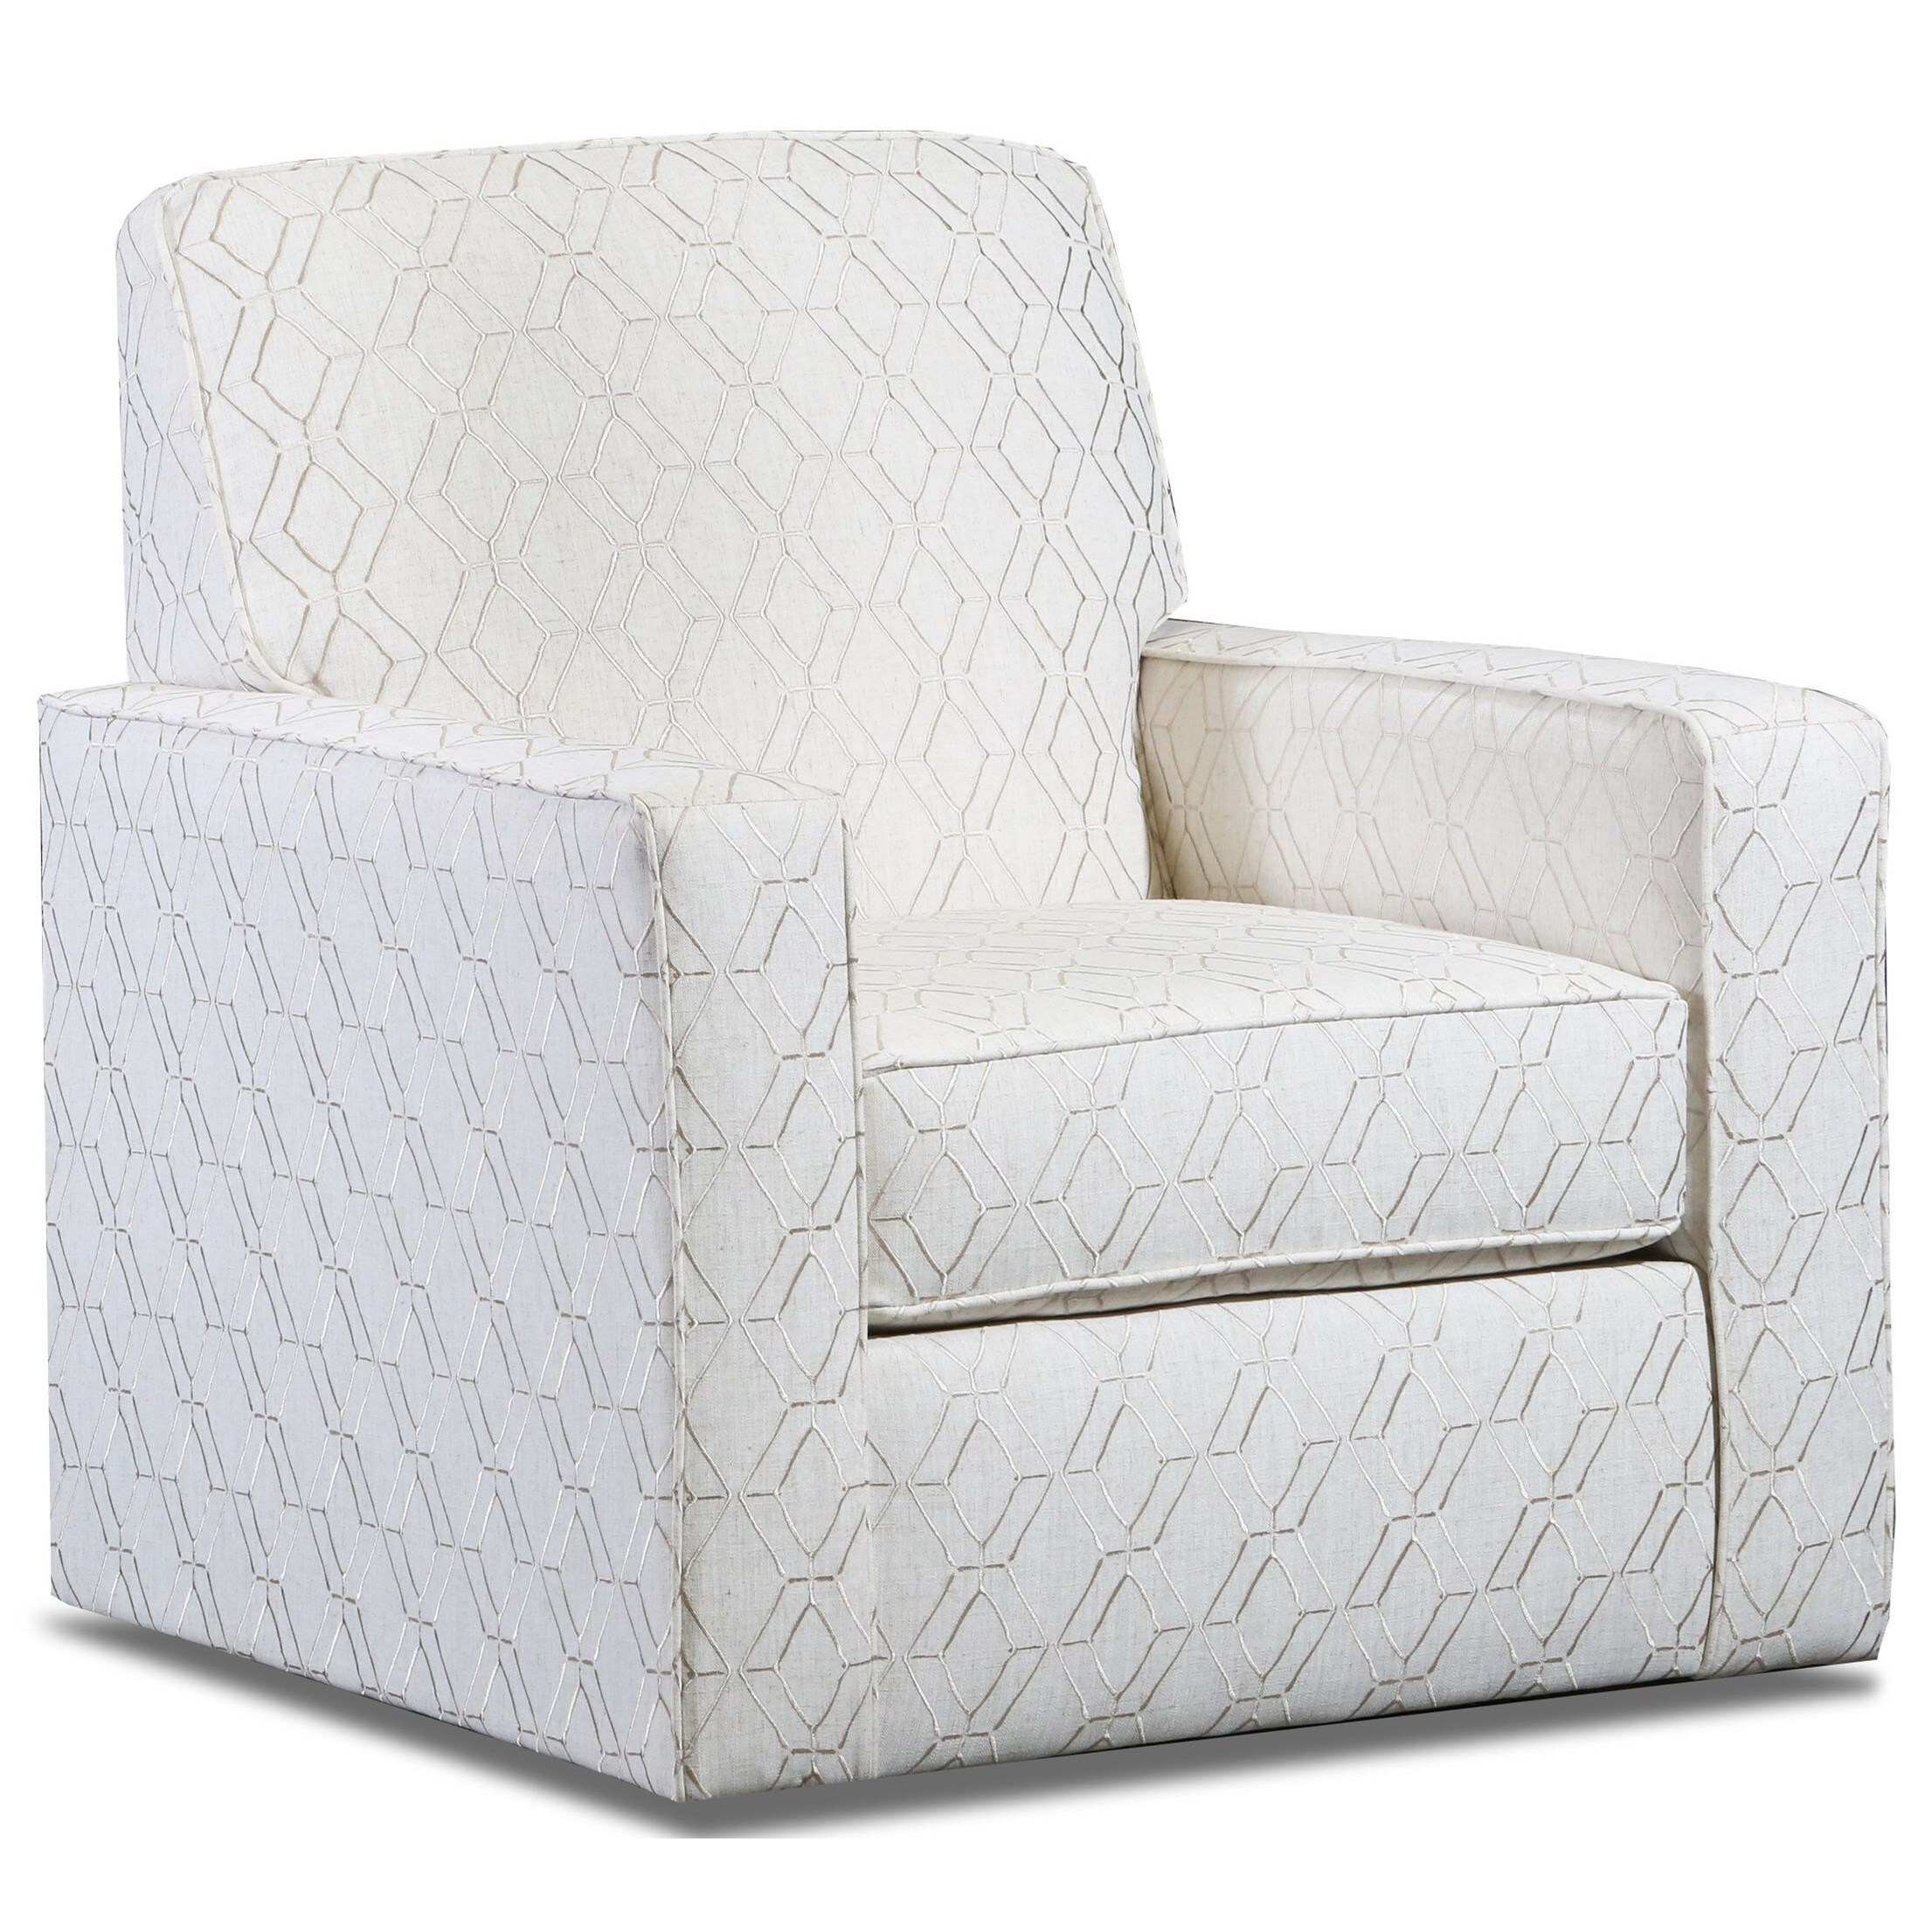 3010 Swivel Chair by Peak Living at Prime Brothers Furniture